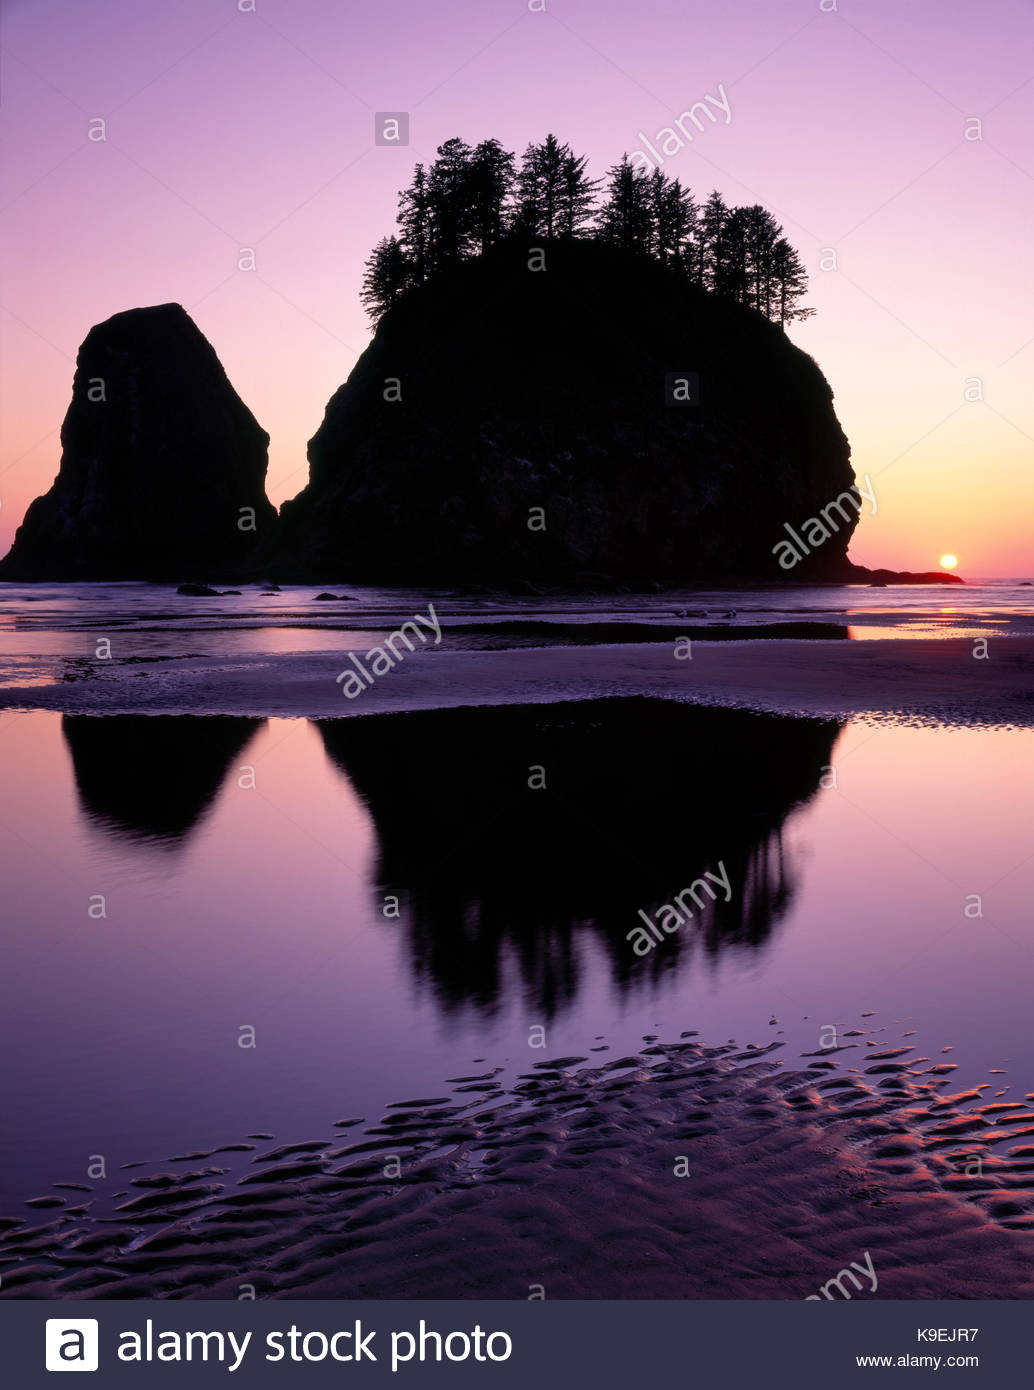 Crying Lady Rock and Sunset at Second Beach, Olympic National Park, Washington - Stock Image